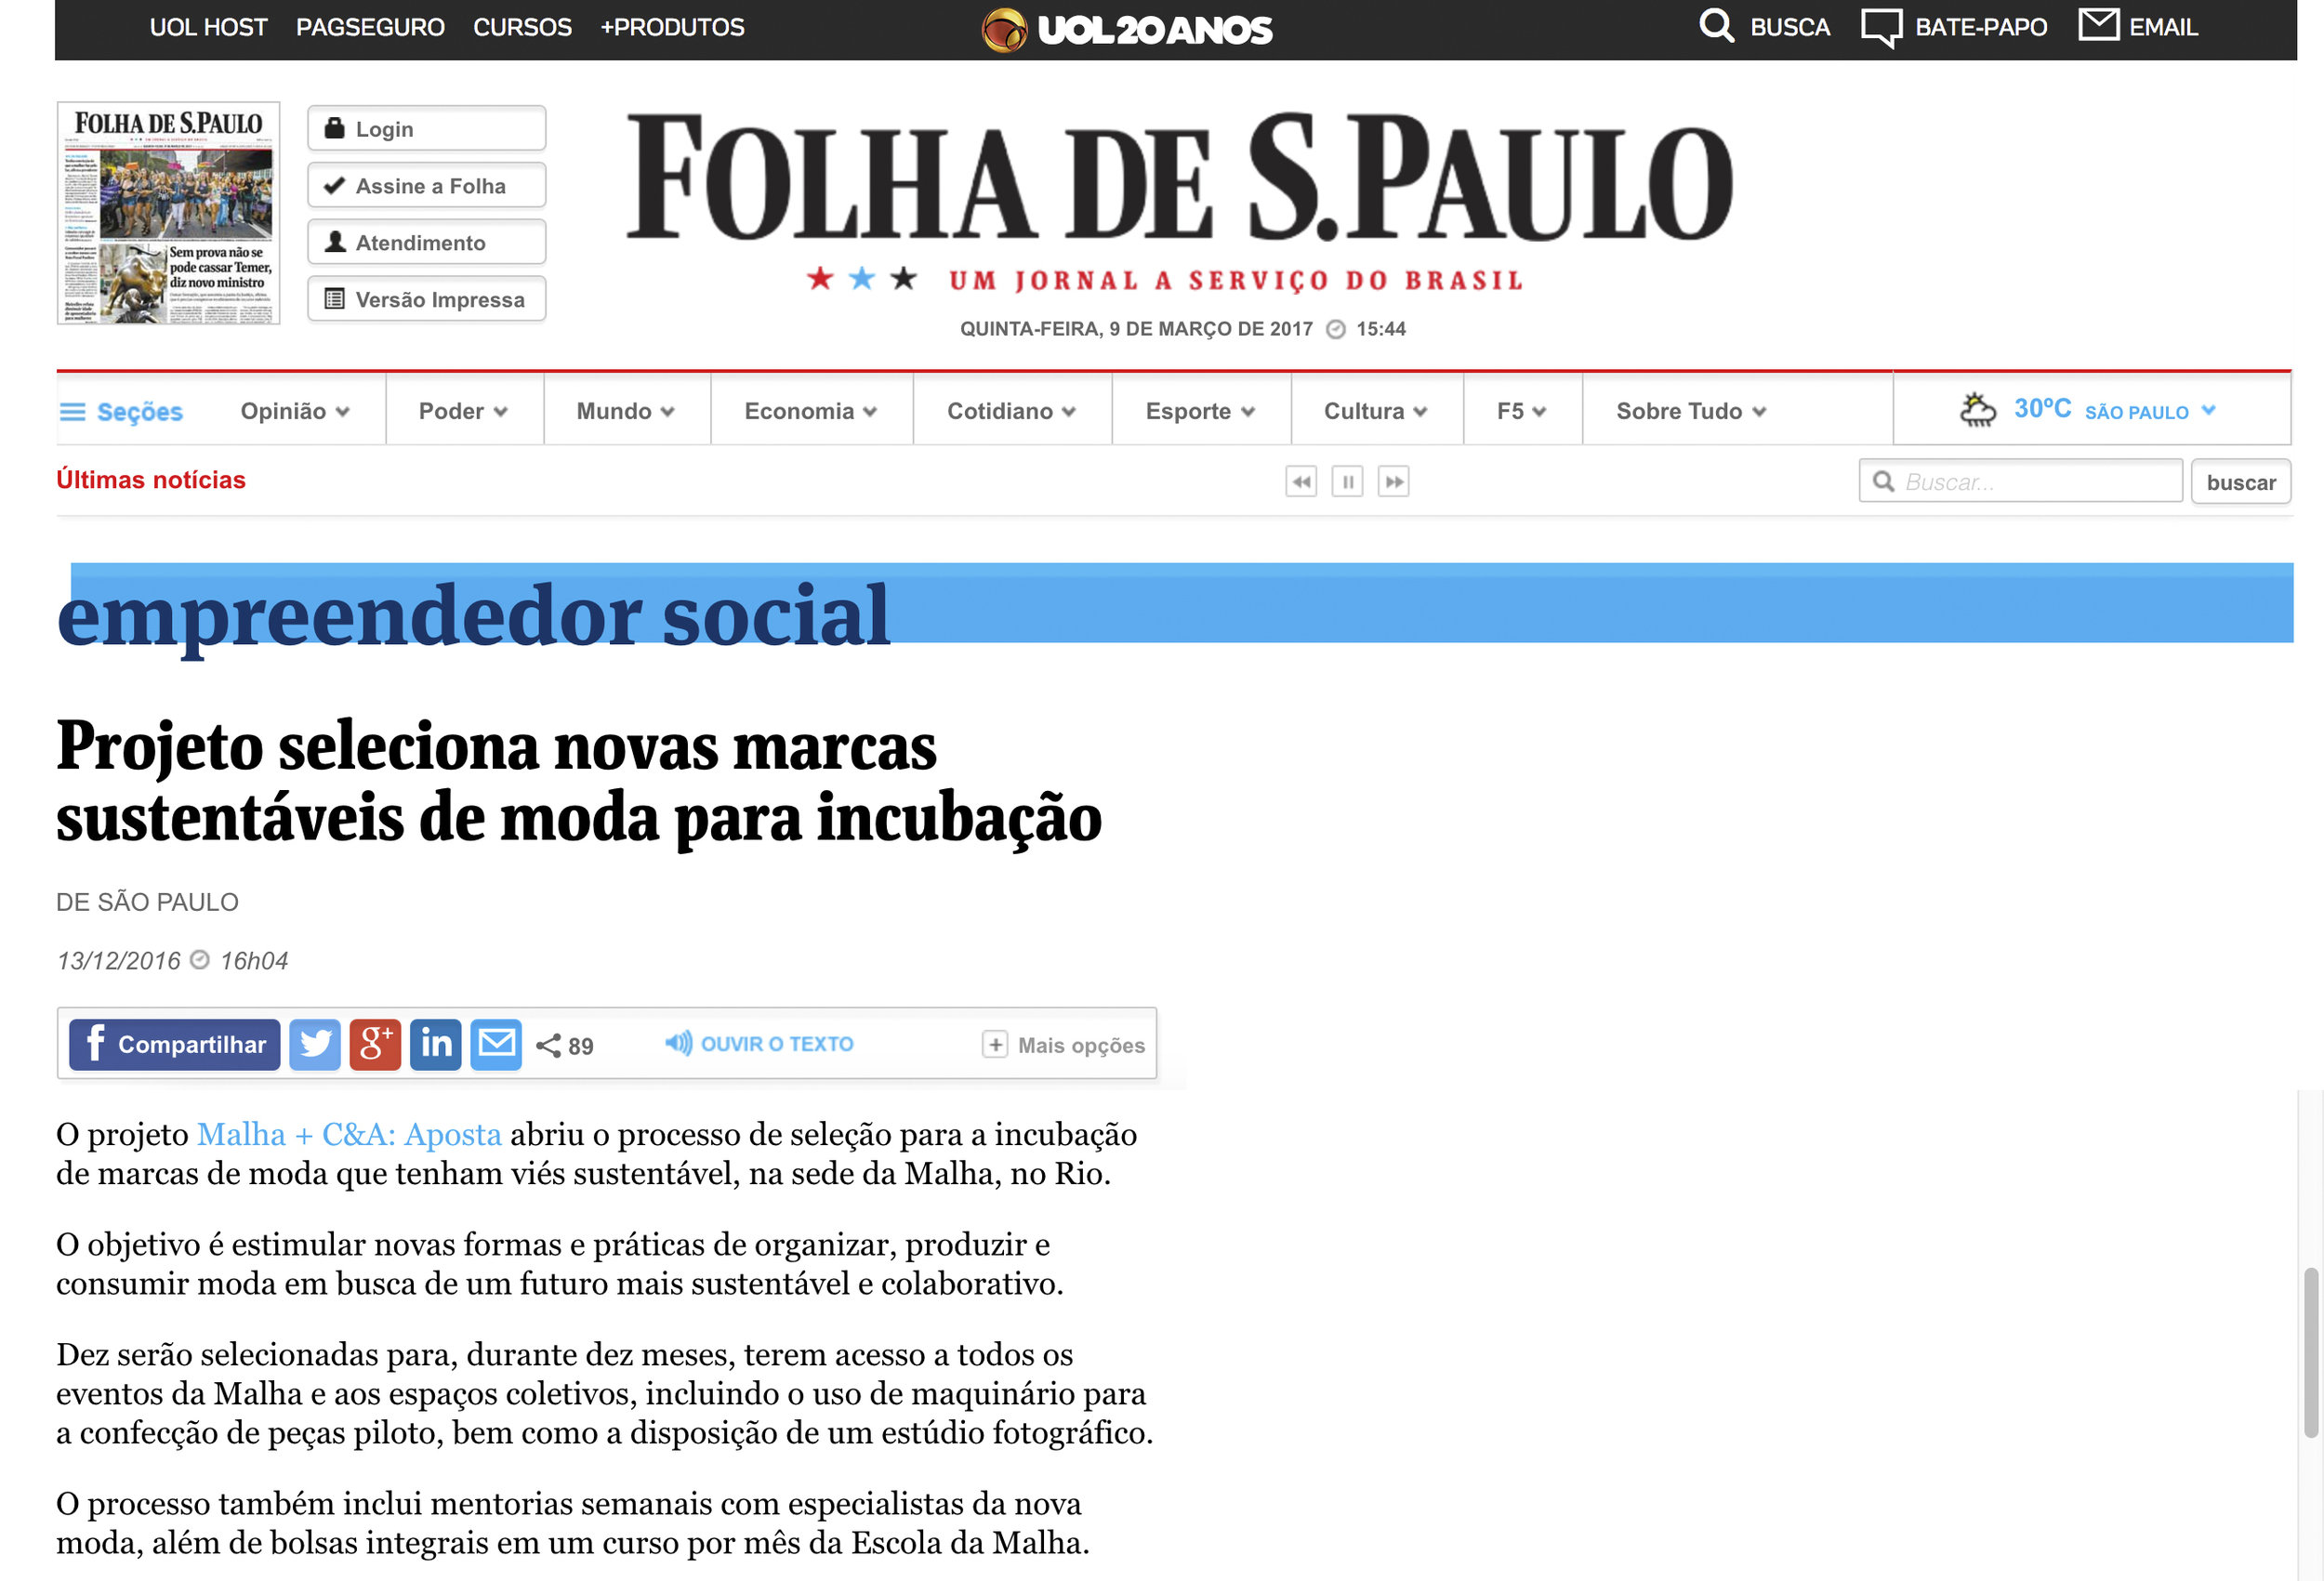 clipping folha (1).jpg